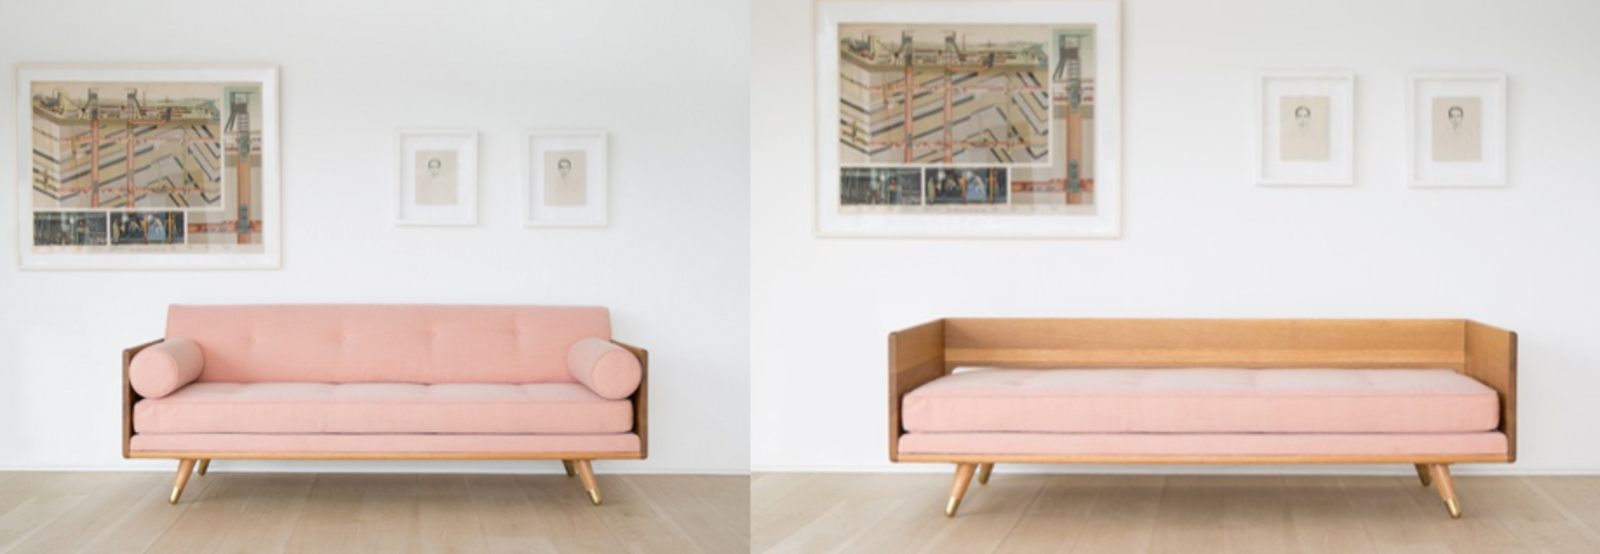 Ditch The Clunky Sleeper Sofa These